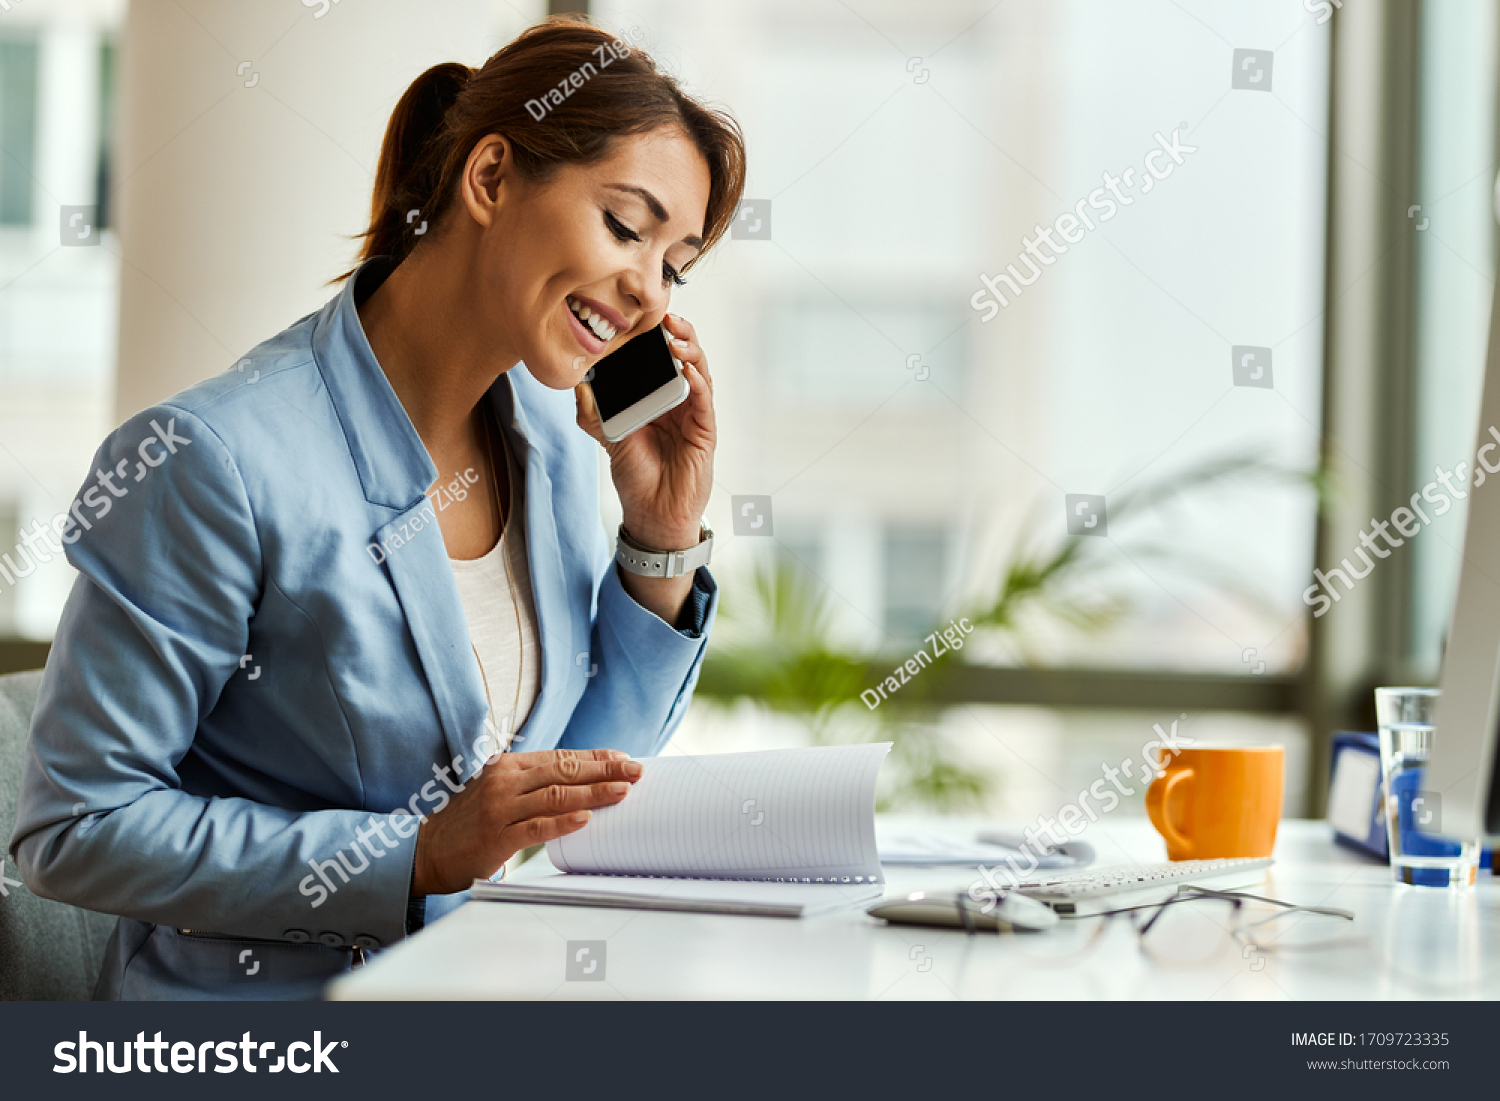 Happy businesswoman talking on mobile phone while analyzing weekly schedule in her notebook. #1709723335